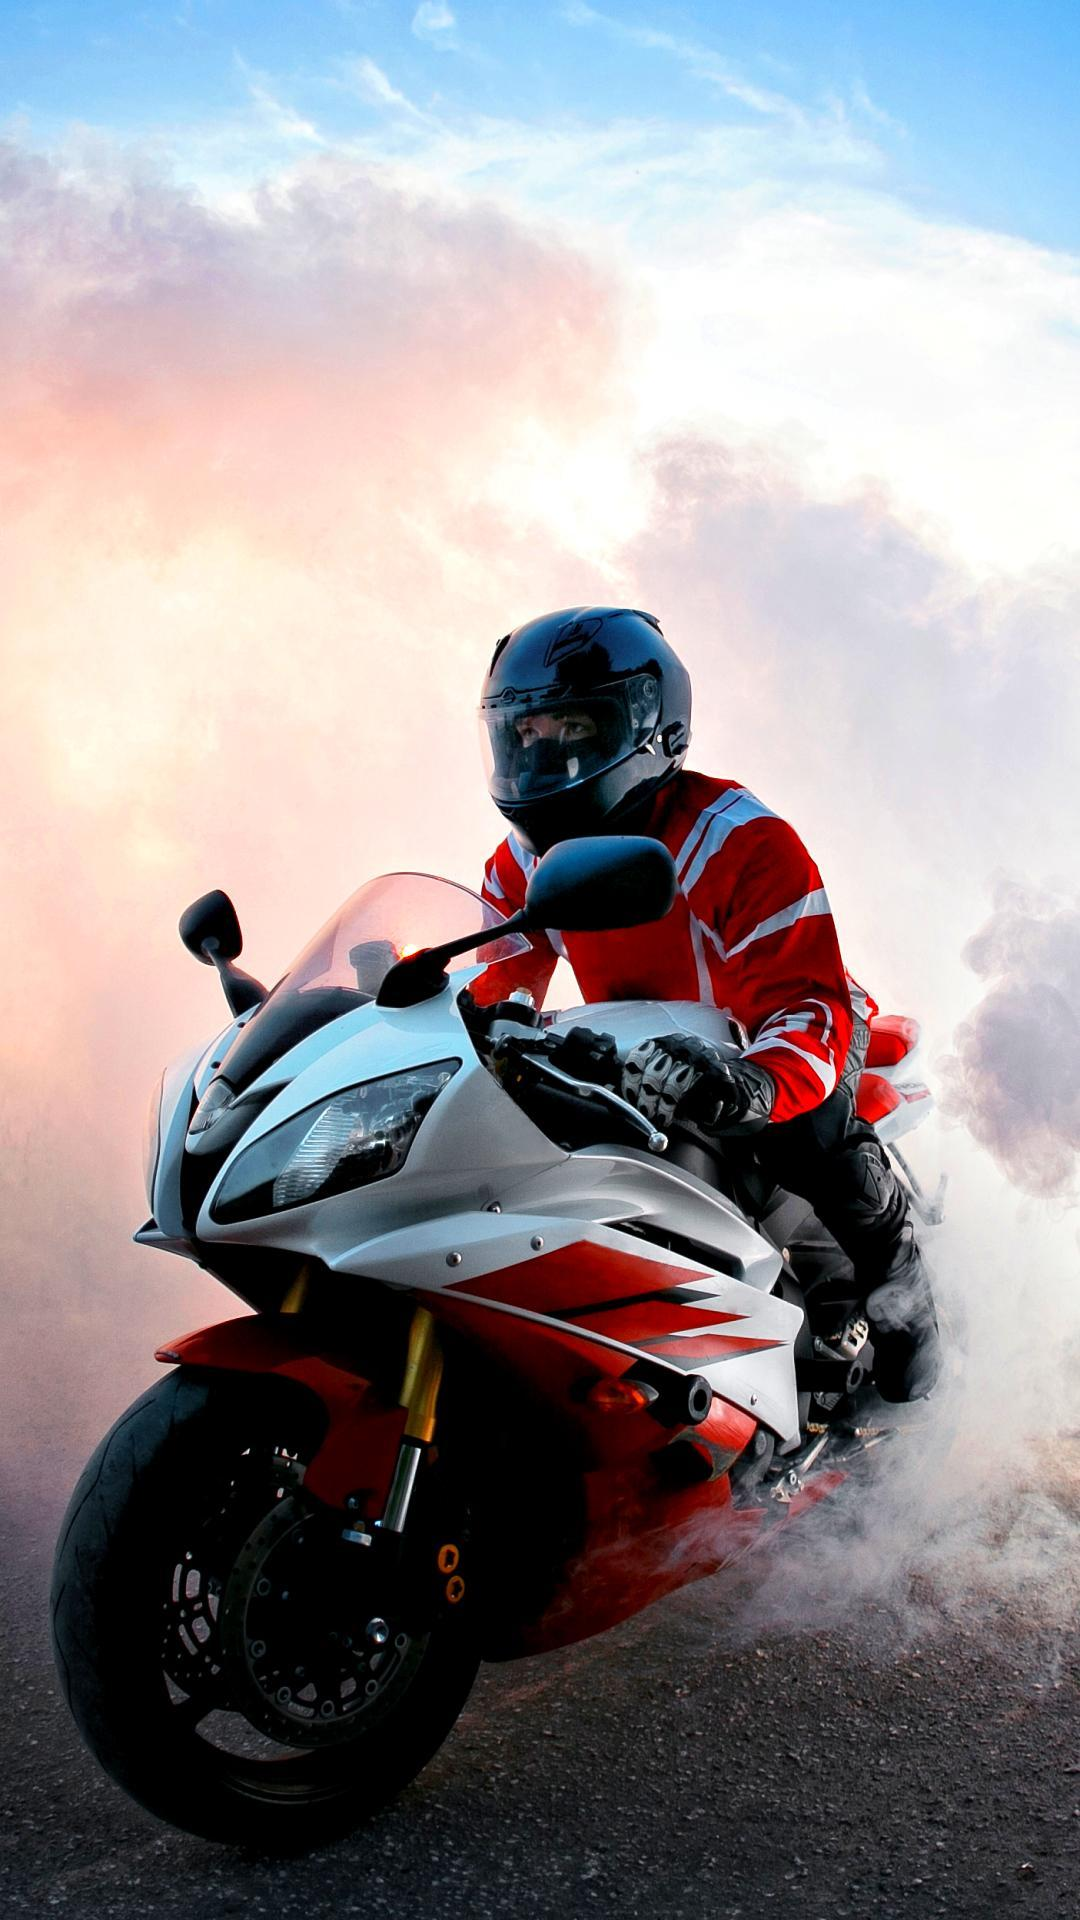 Motorcycle Wallpaper Qualiti 4k For Android Apk Download